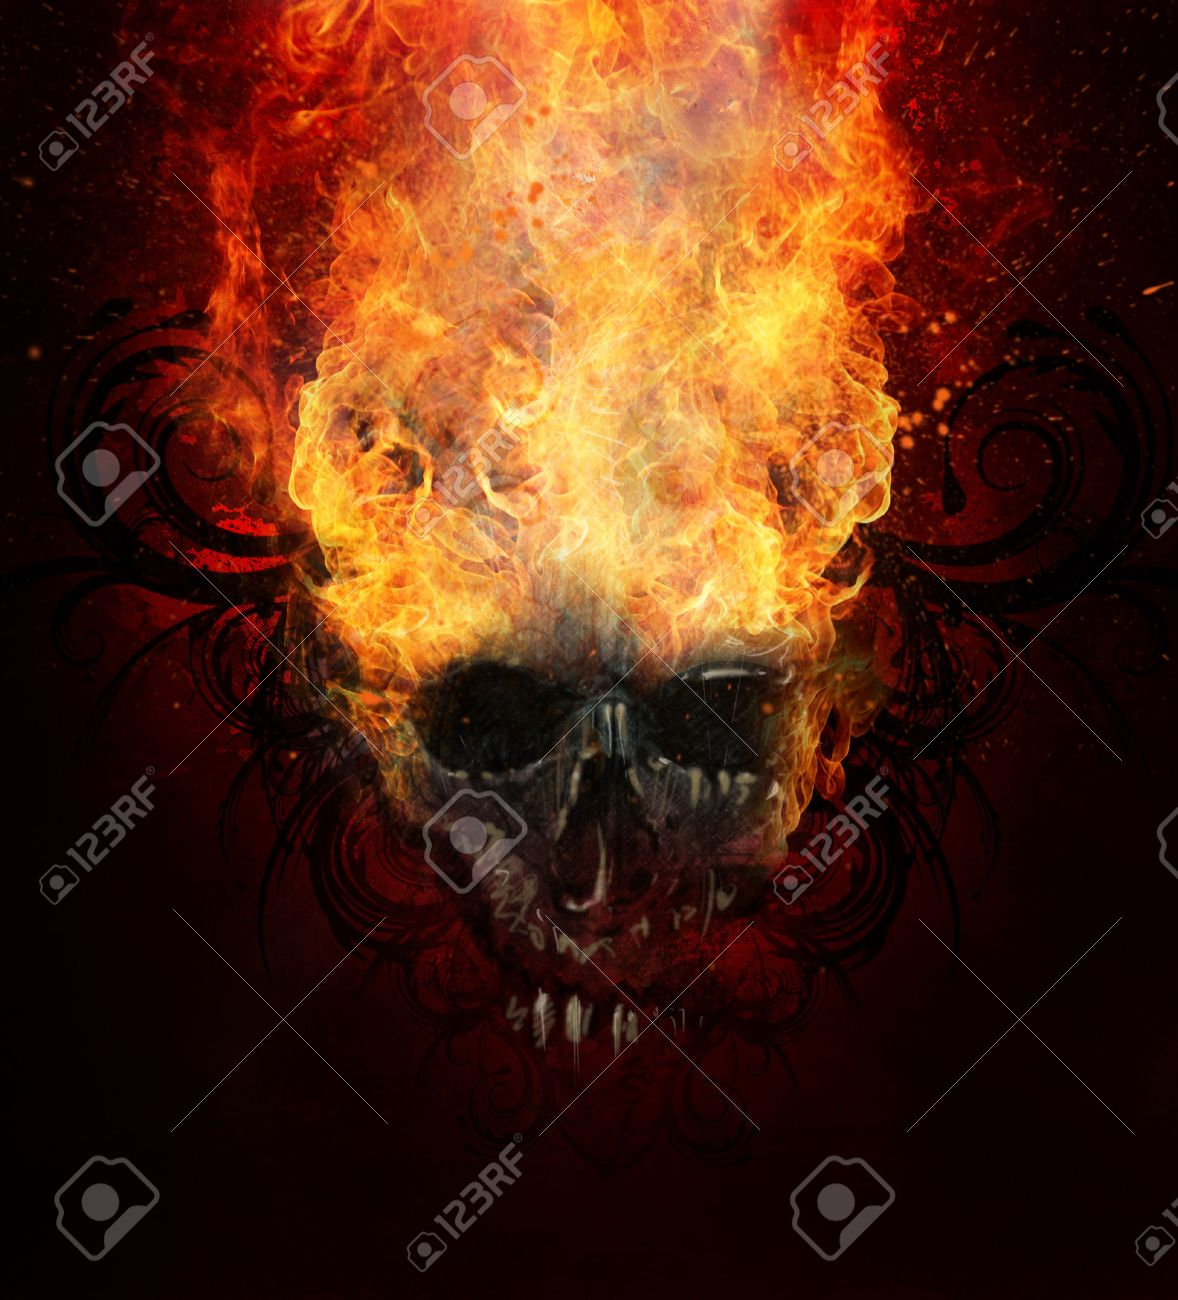 Burning skull. Sketch of tattoo art, fire with tribal flourishes Stock Photo - 27100365